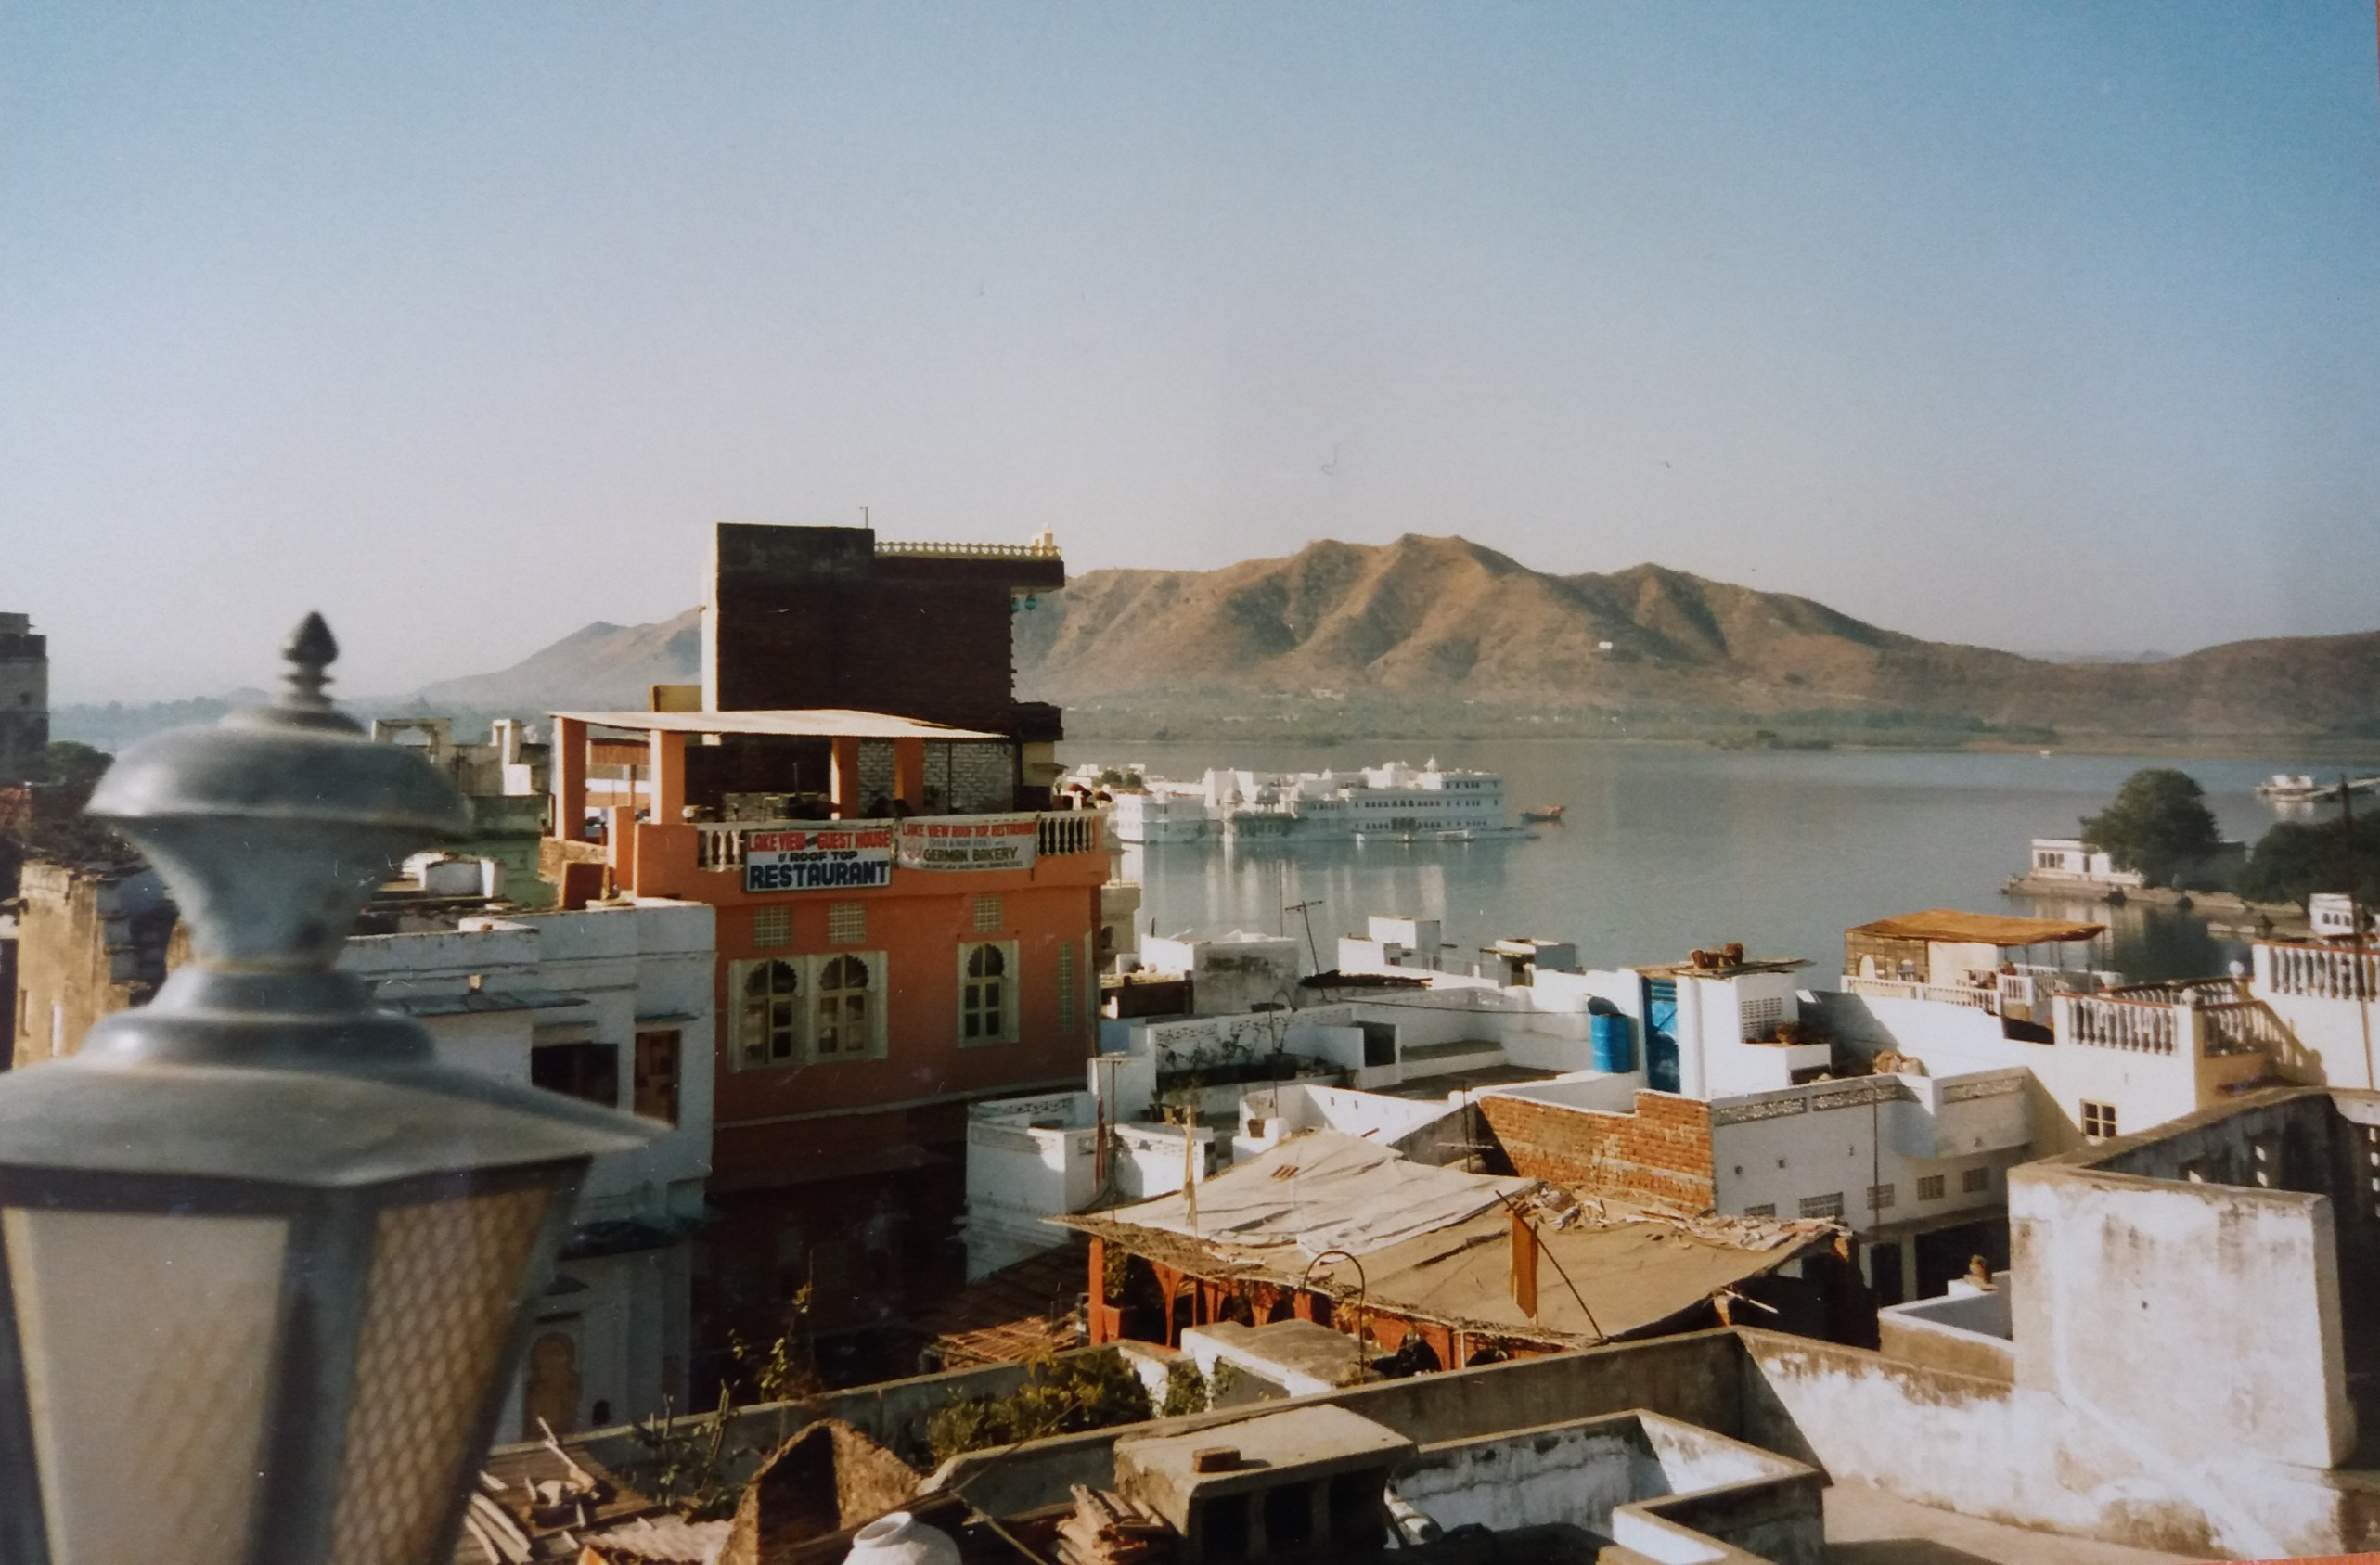 India diary - Day 14 - Udaipur